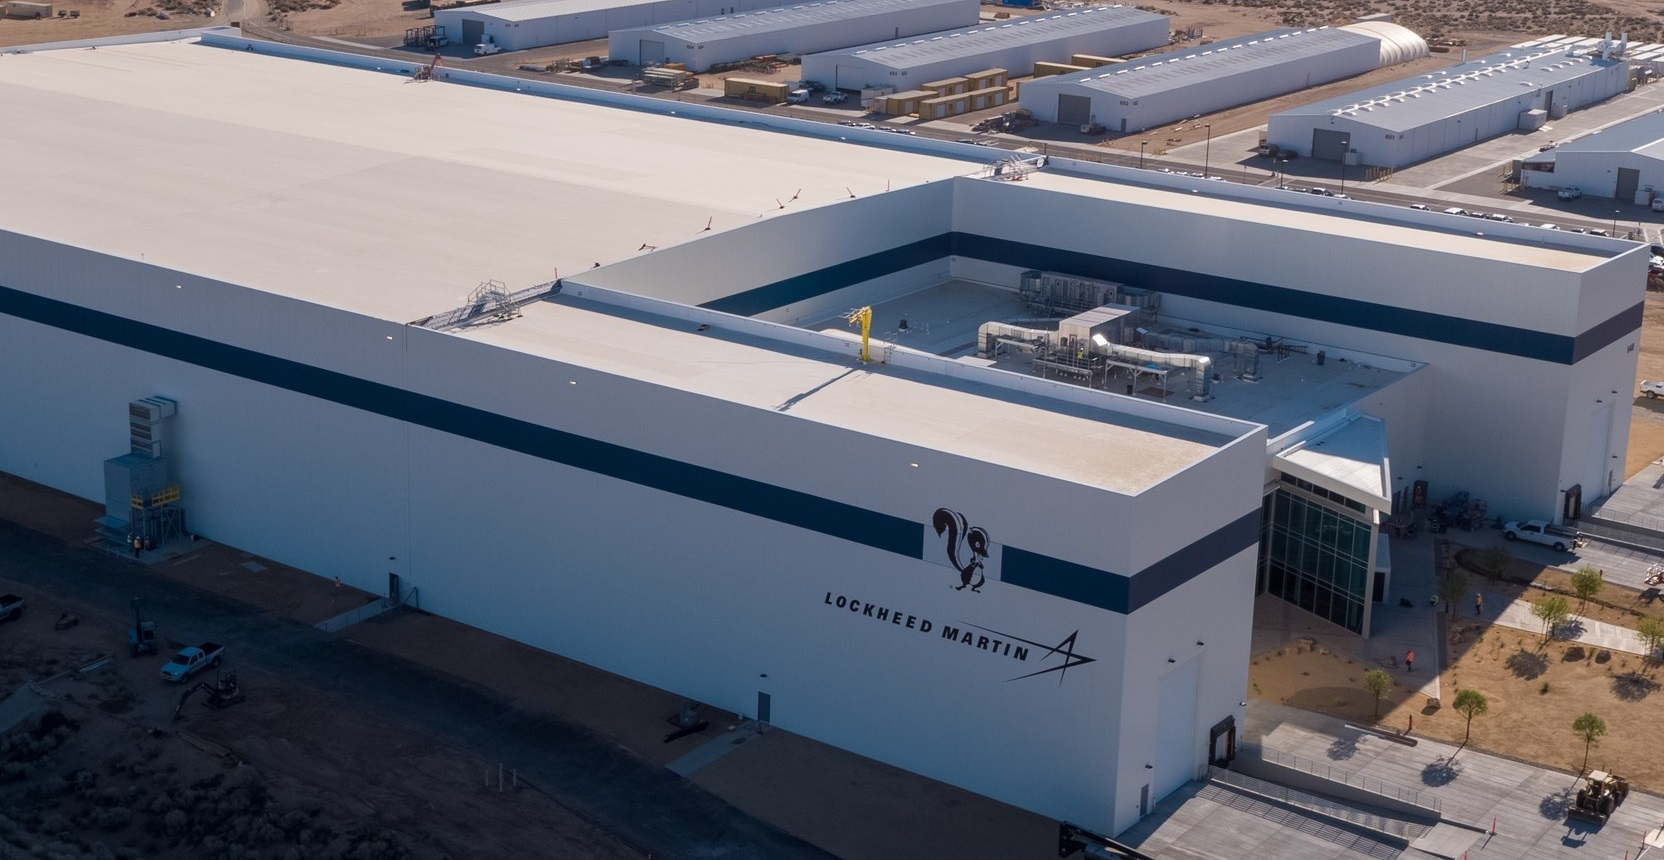 Lockheed Martin's Advanced Manufacturing Facility at the Skunk Works® in Palmdale, California